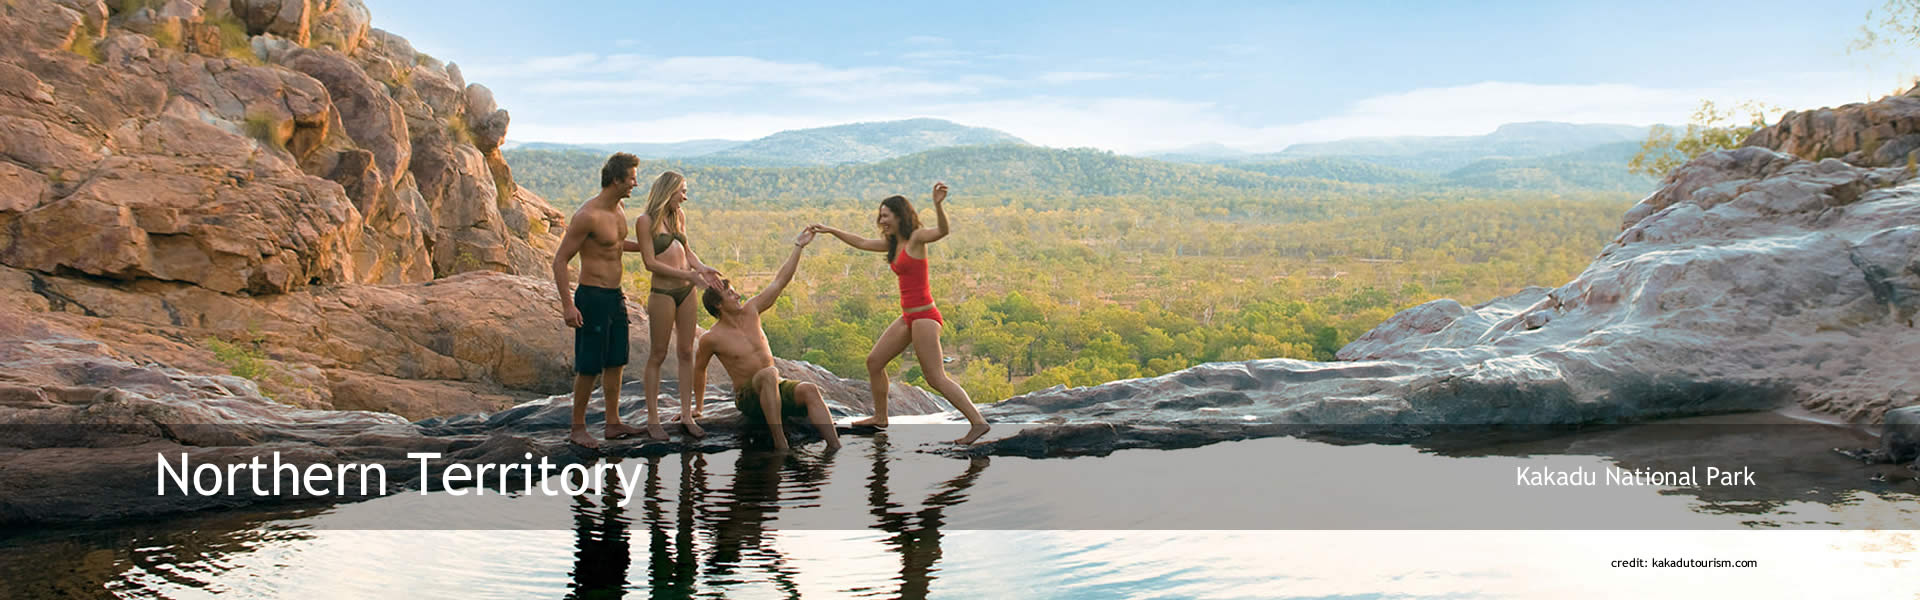 Northern Territory Australia  Accommodation and Information